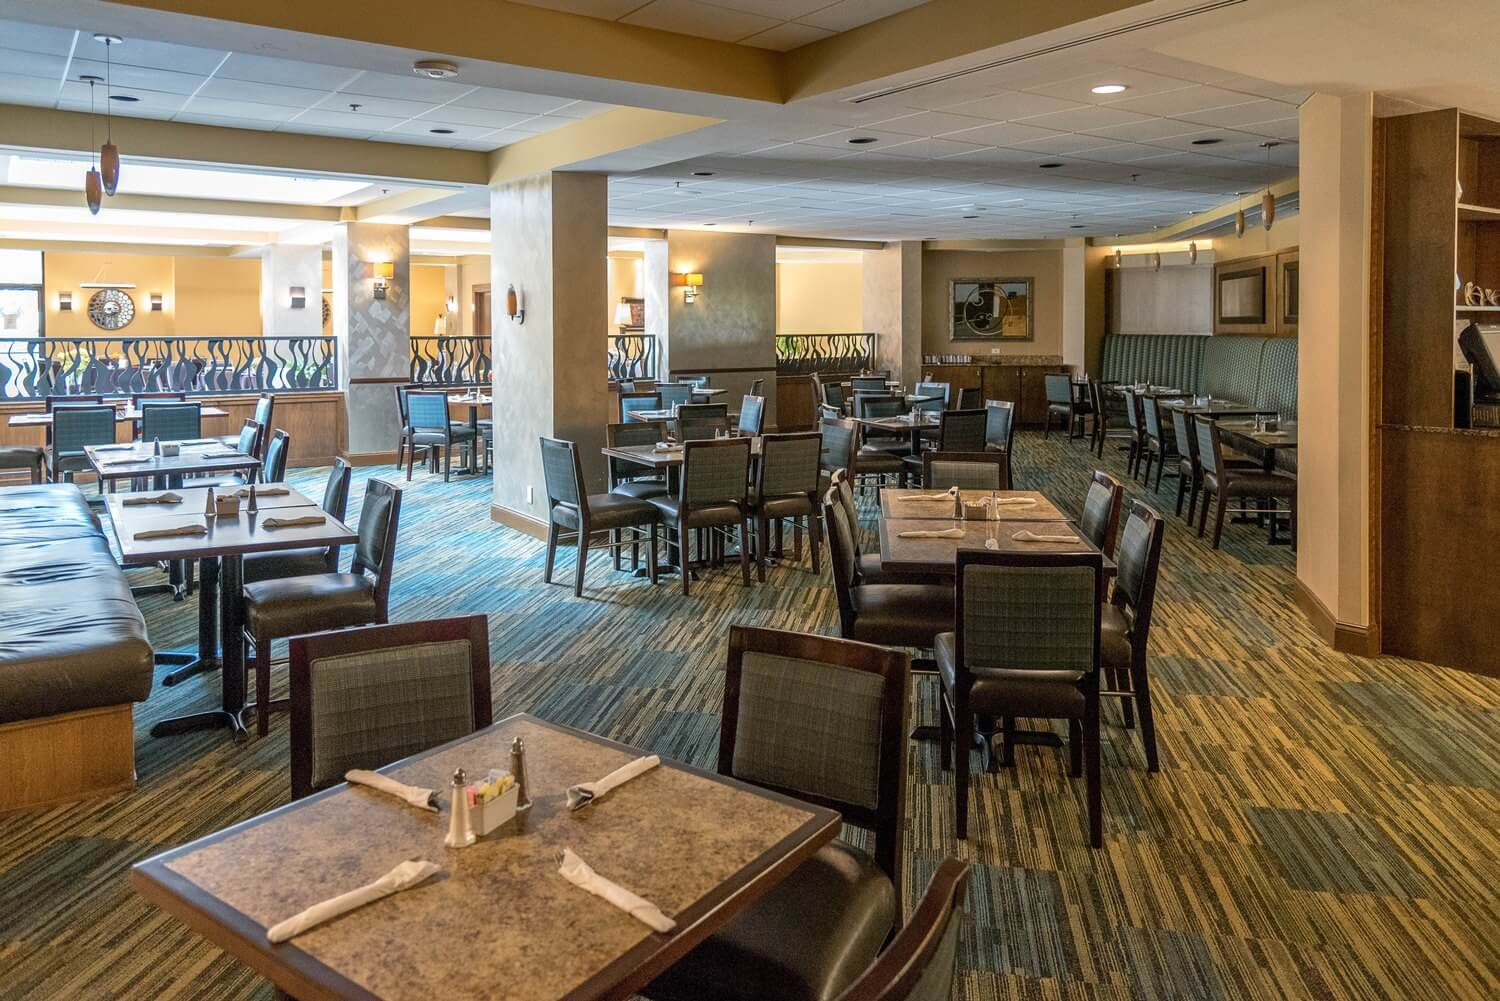 Evergreen Cafe at DoubleTree Suites by Hilton Orlando - Disney Springs Resort Area